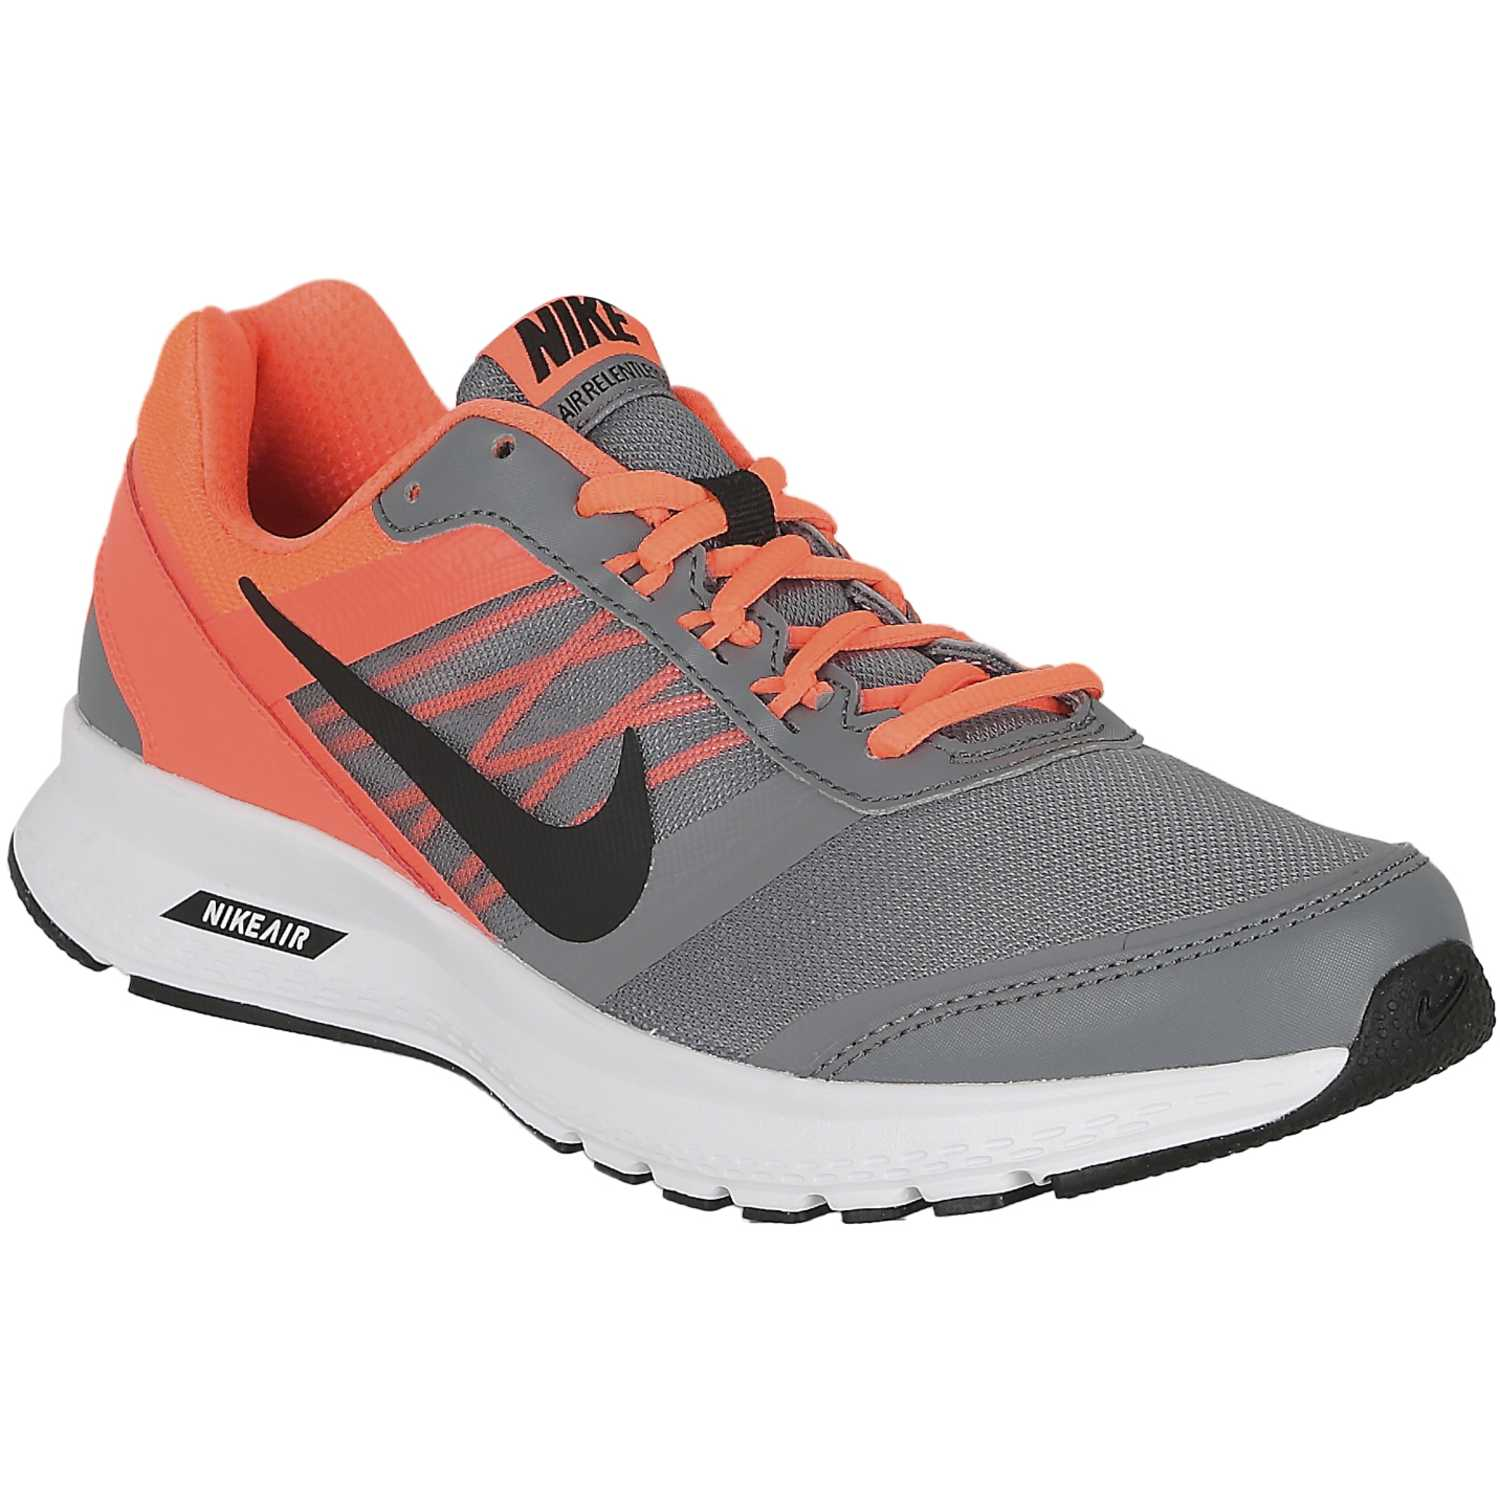 wholesale dealer e5568 003a8 Zapatilla de Hombre Nike Gris  Rojo air relentless 5 msl